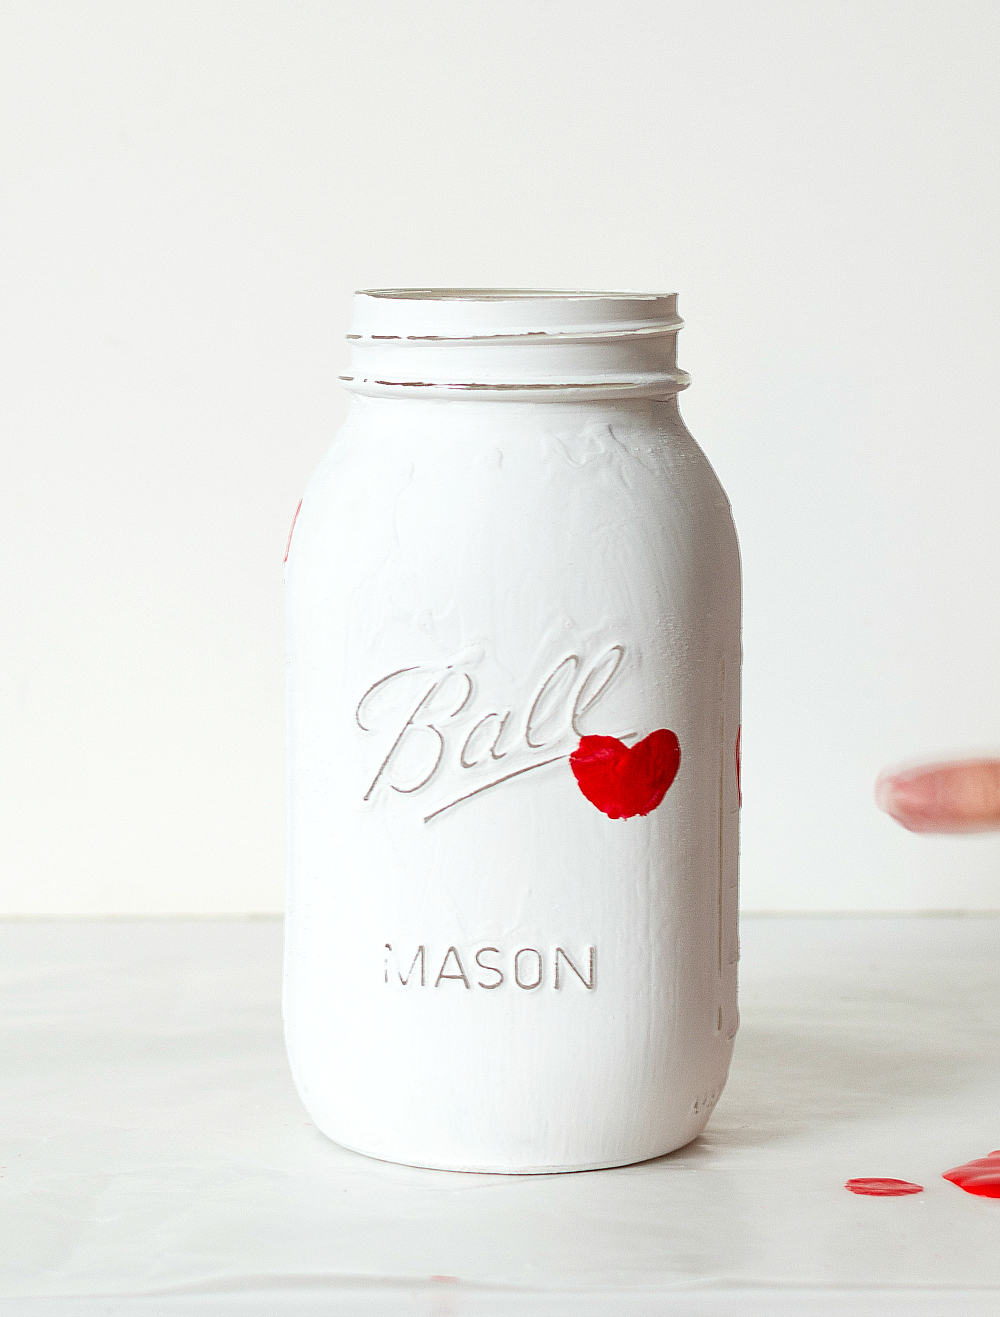 Mason Jar Craft Ideas for Valentines Day